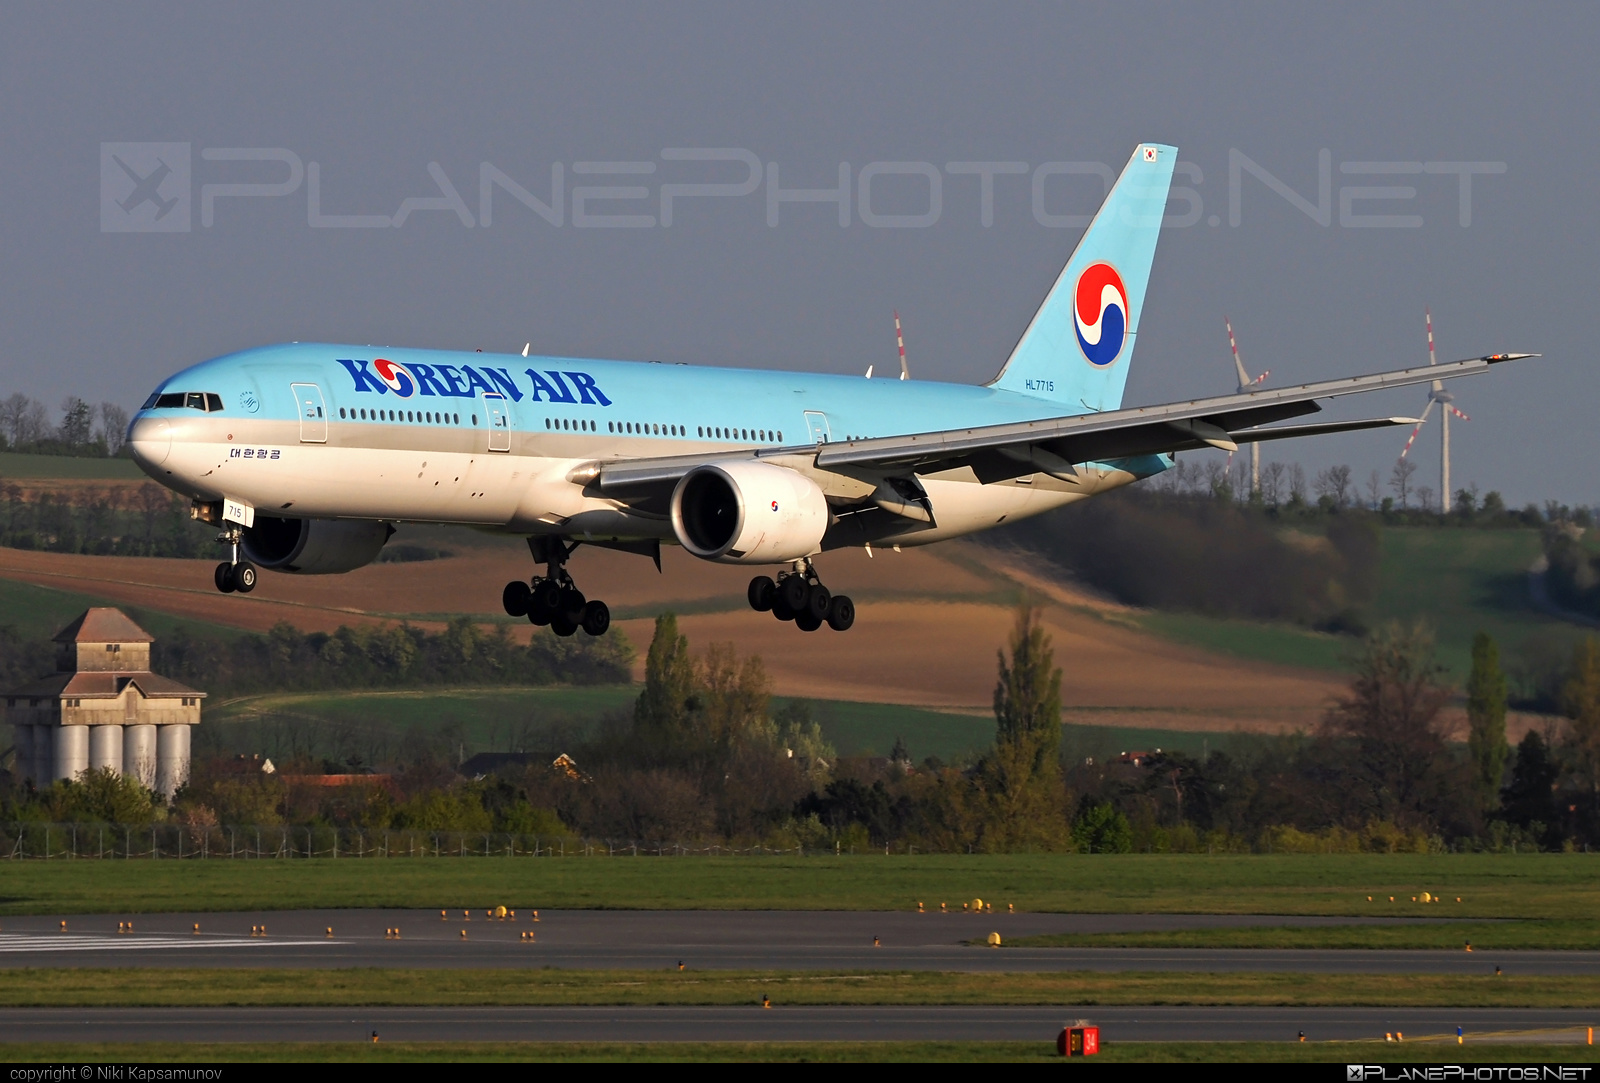 Boeing 777-200ER - HL7715 operated by Korean Air #b777 #b777er #boeing #boeing777 #koreanair #tripleseven